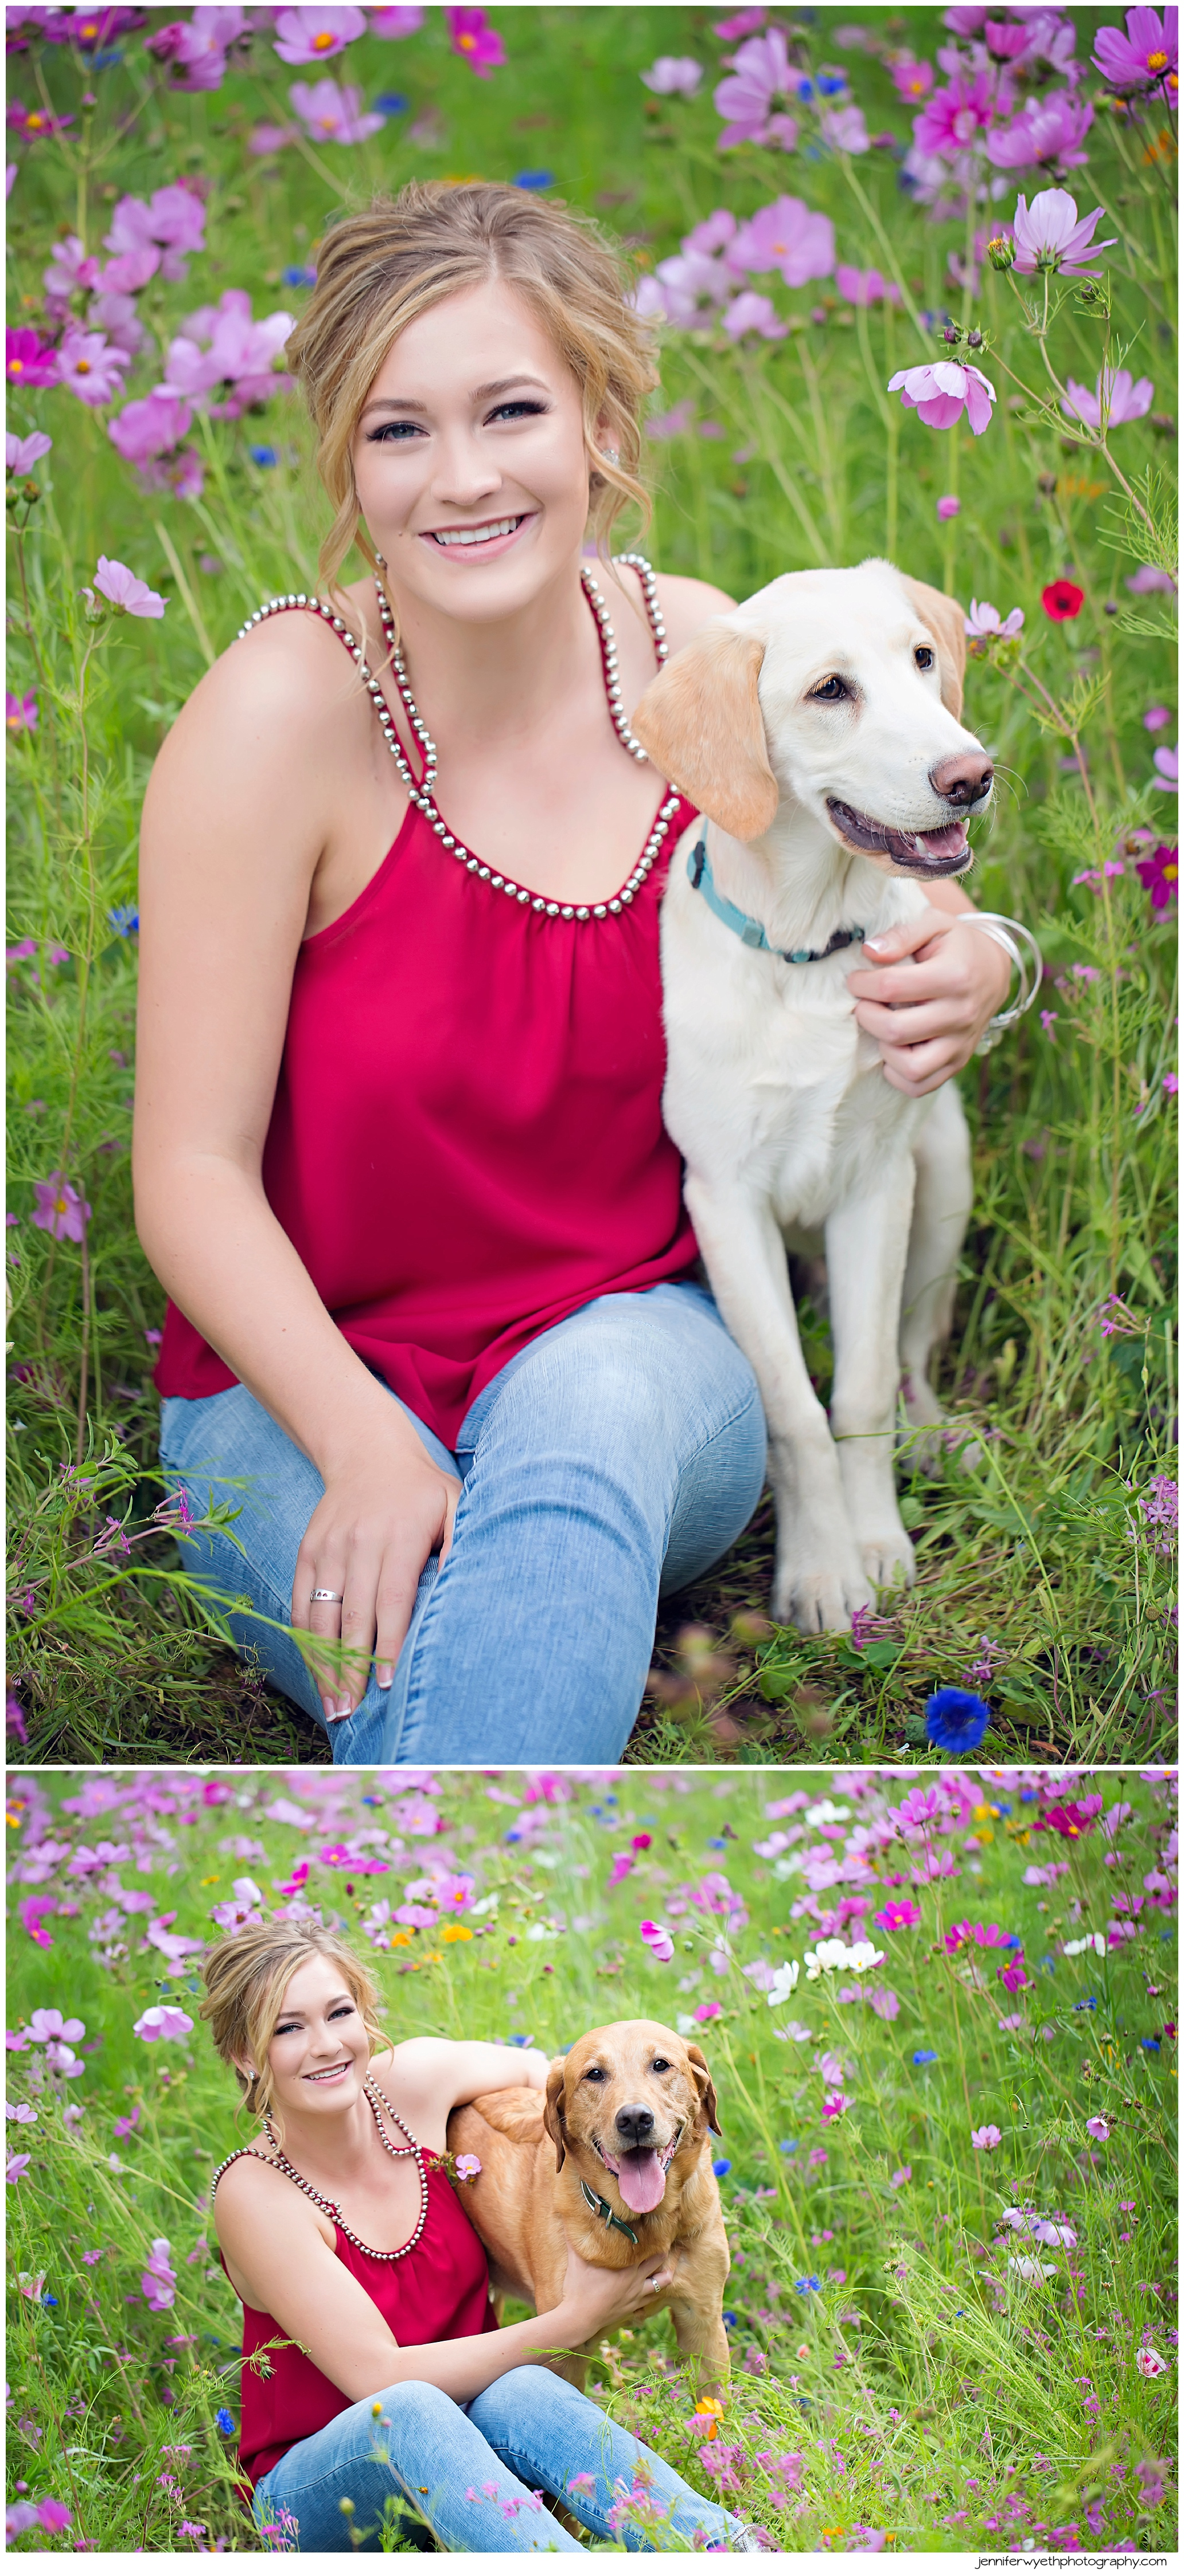 Jennifer-Wyeth-photography-senior-pictures-colorado-springs-photographer_0179.jpg